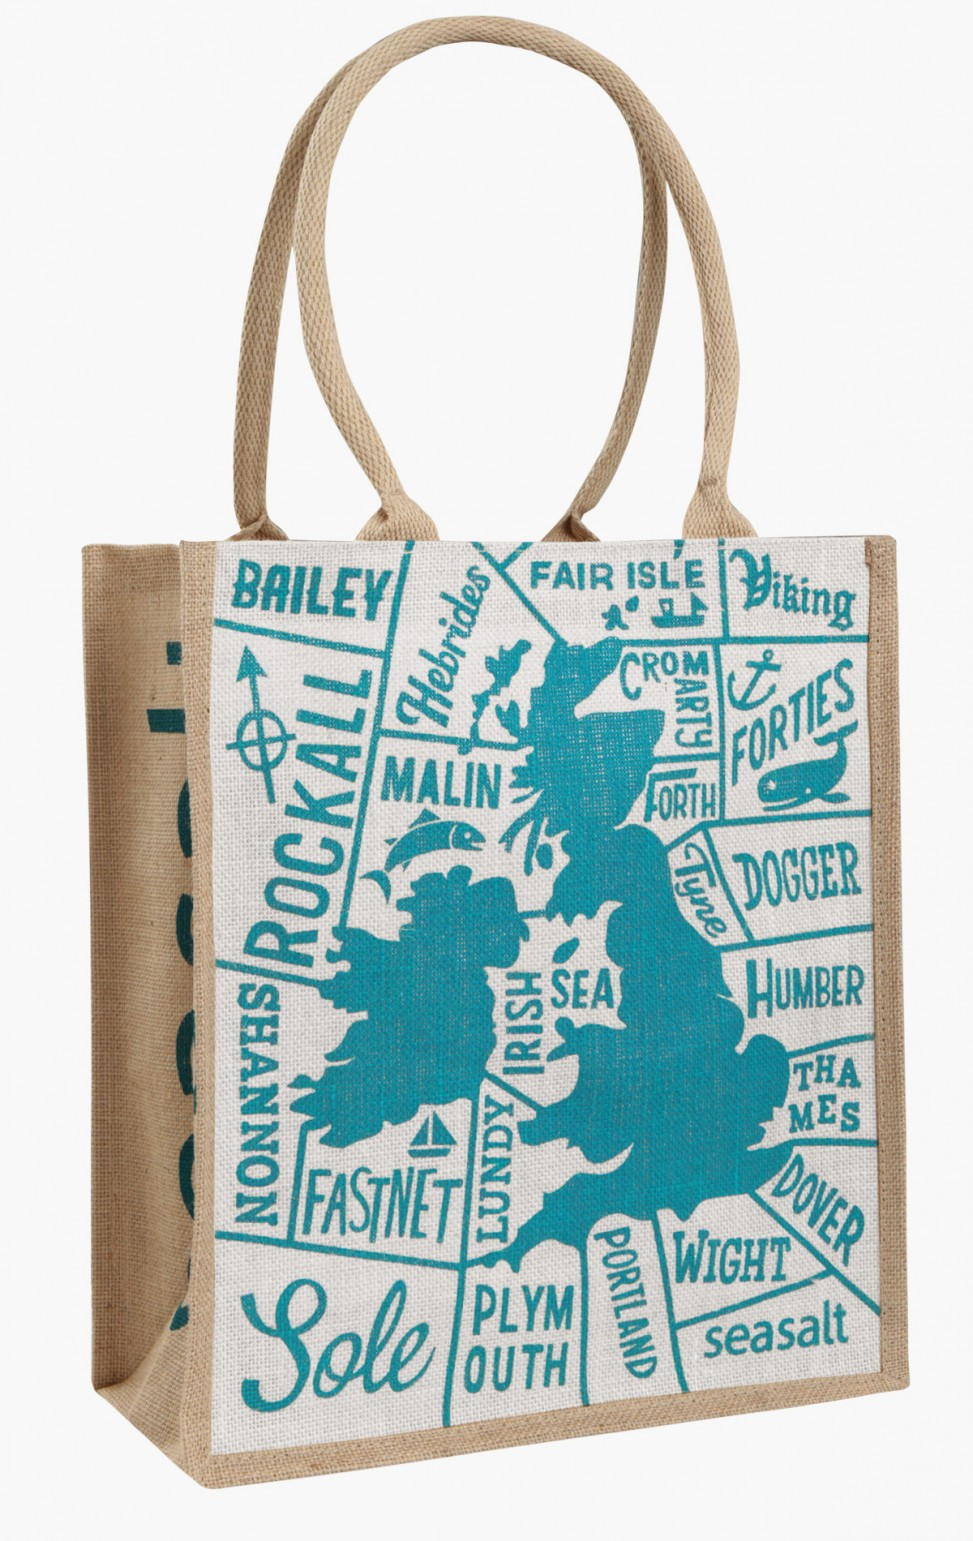 Shipping Forecast map illustration by Matt Johnson for Seasalt Cornwall